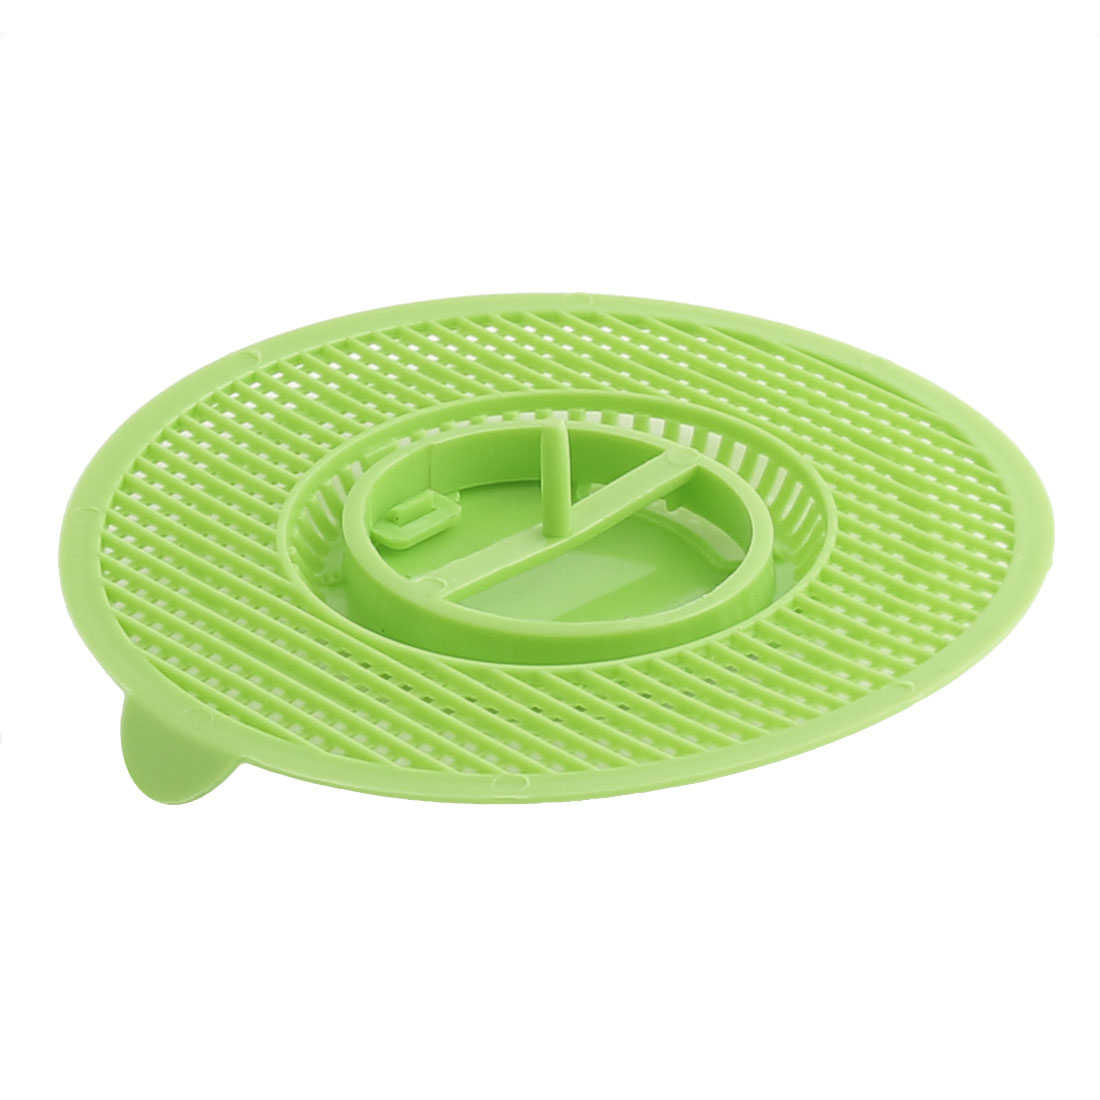 Household Kitchen Bathtub Round Shaped Waste Hair Drain Stopper Filter Green